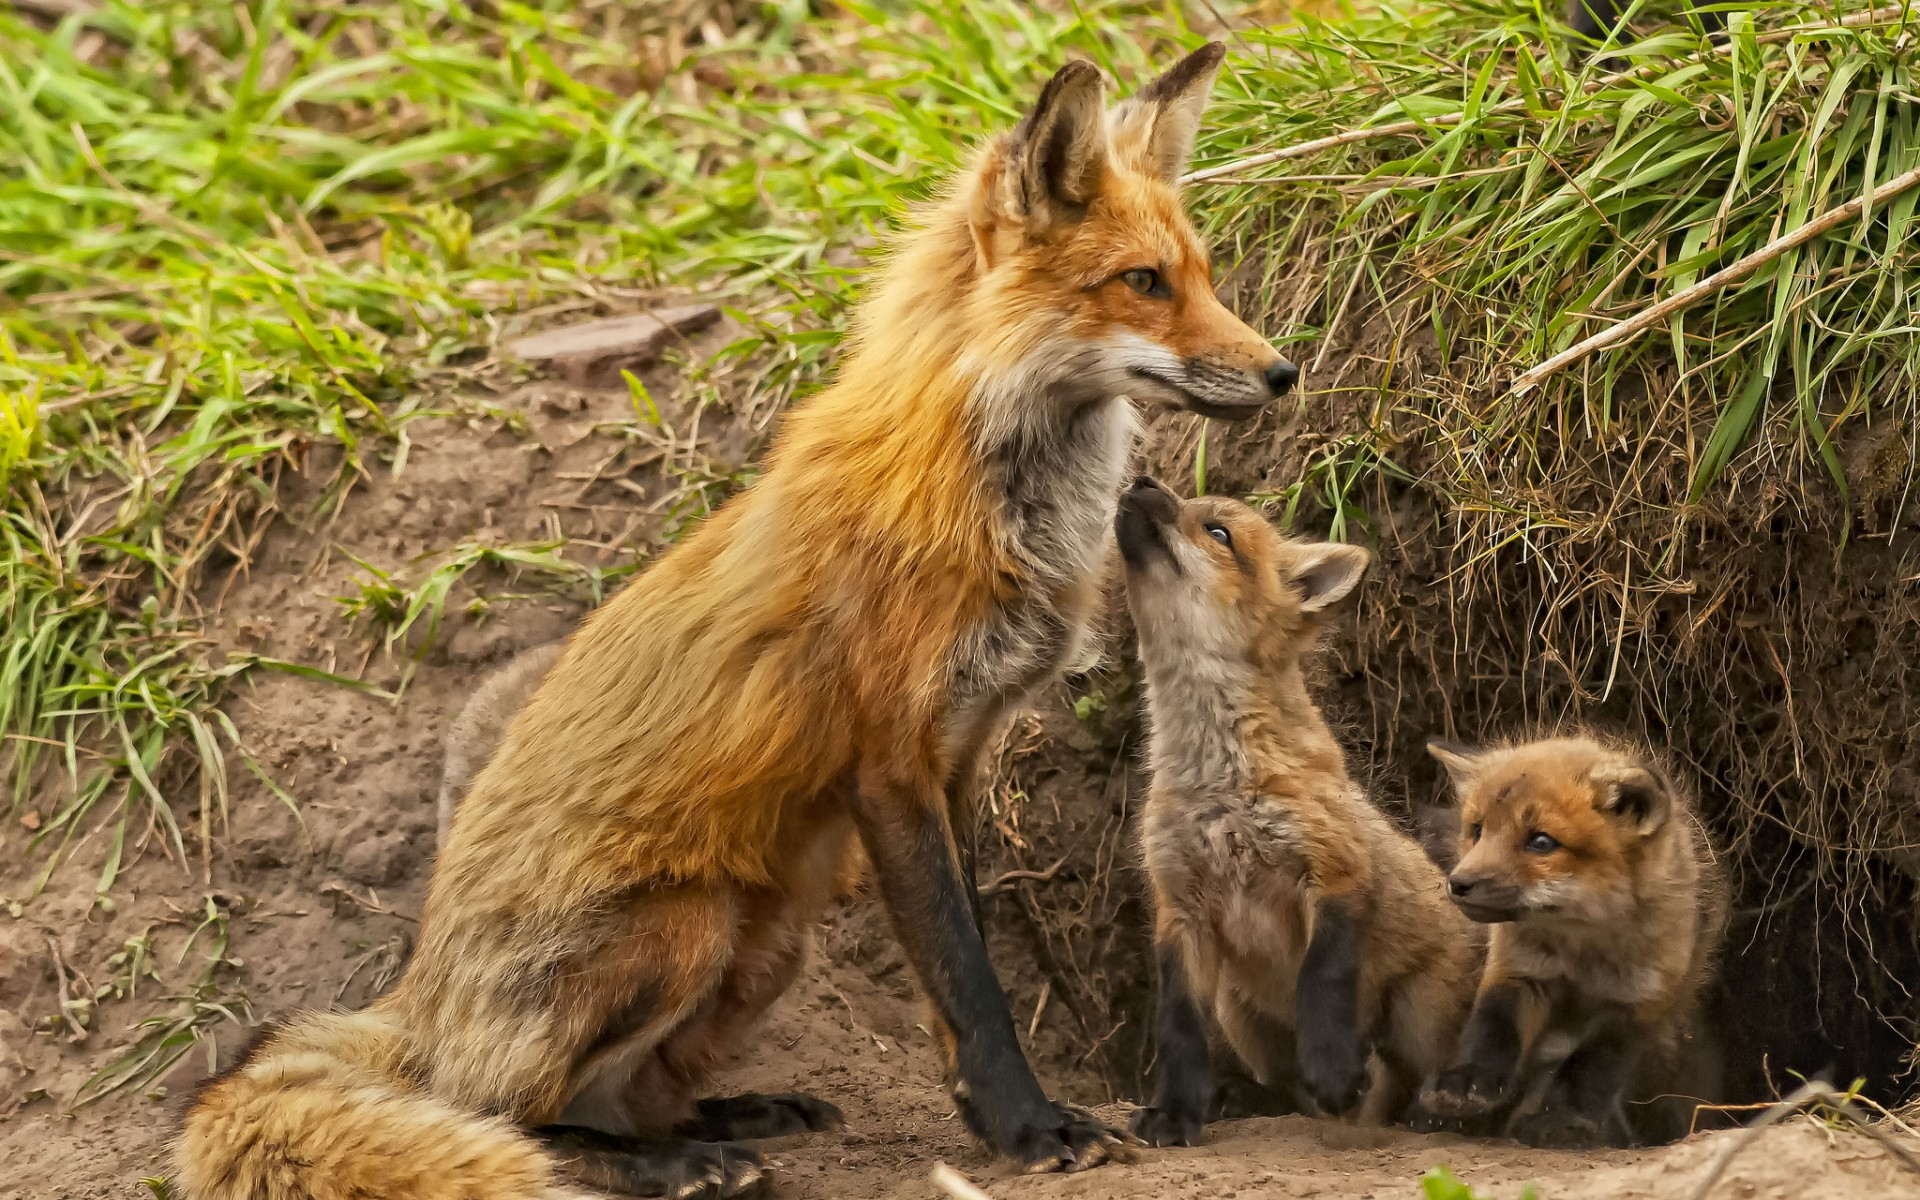 Fox cubs maternity kids babies wallpaper 1920x1200 136893 1920x1200